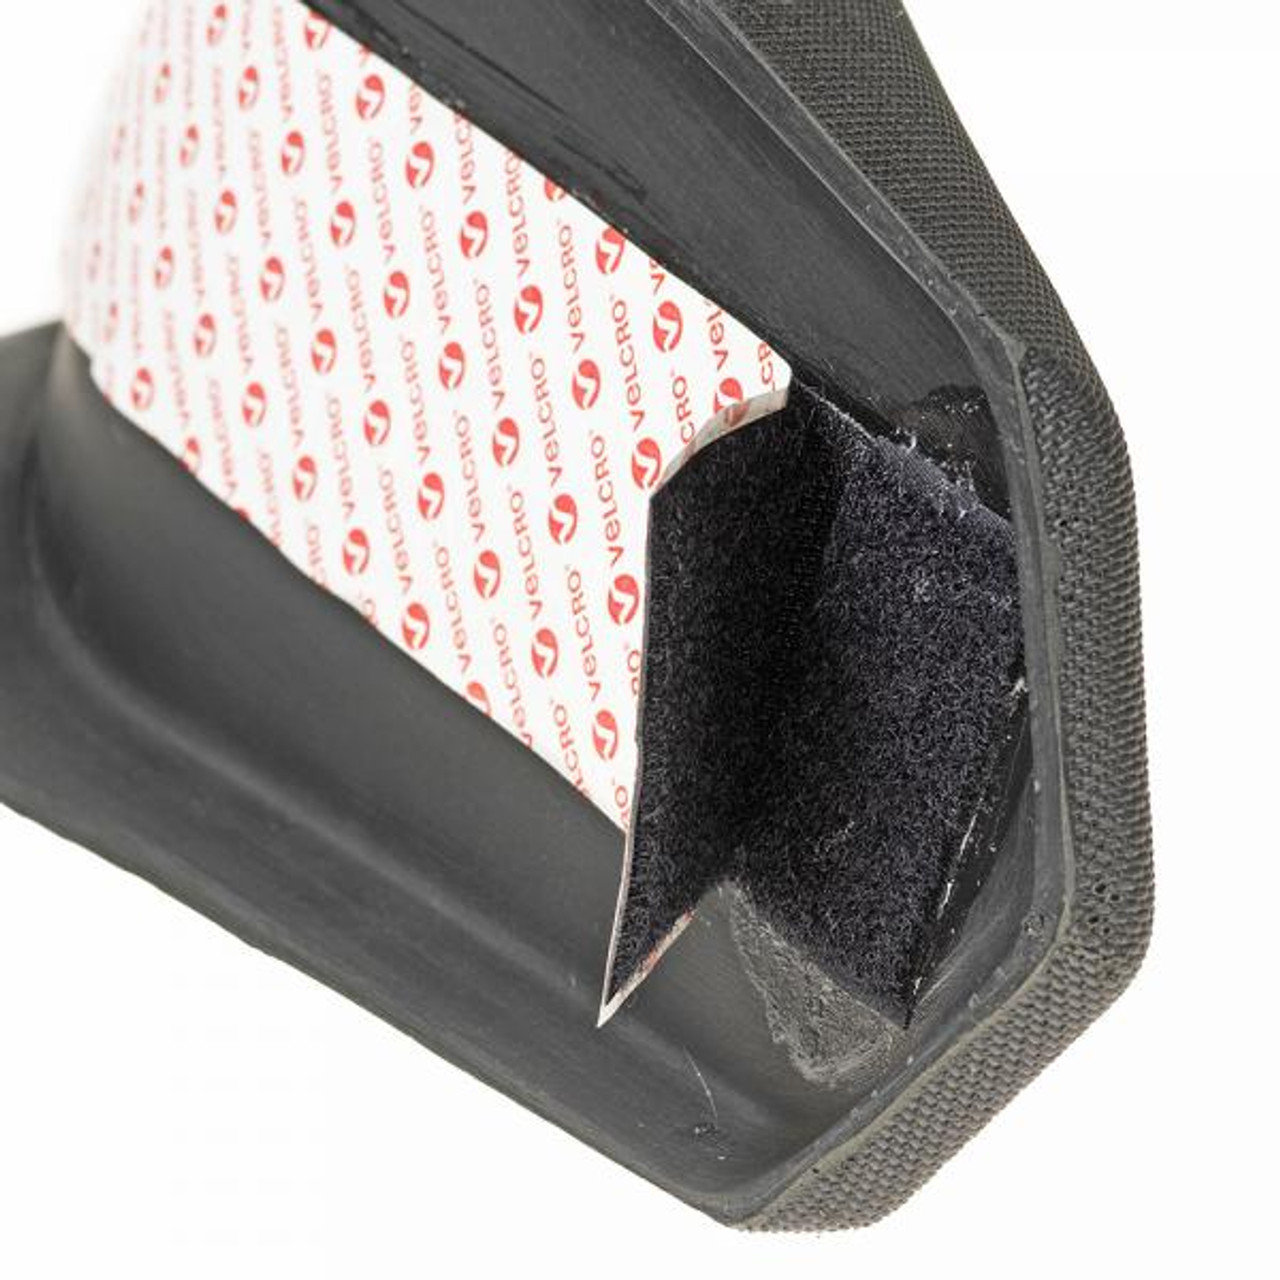 Trials bike seat with Velcro